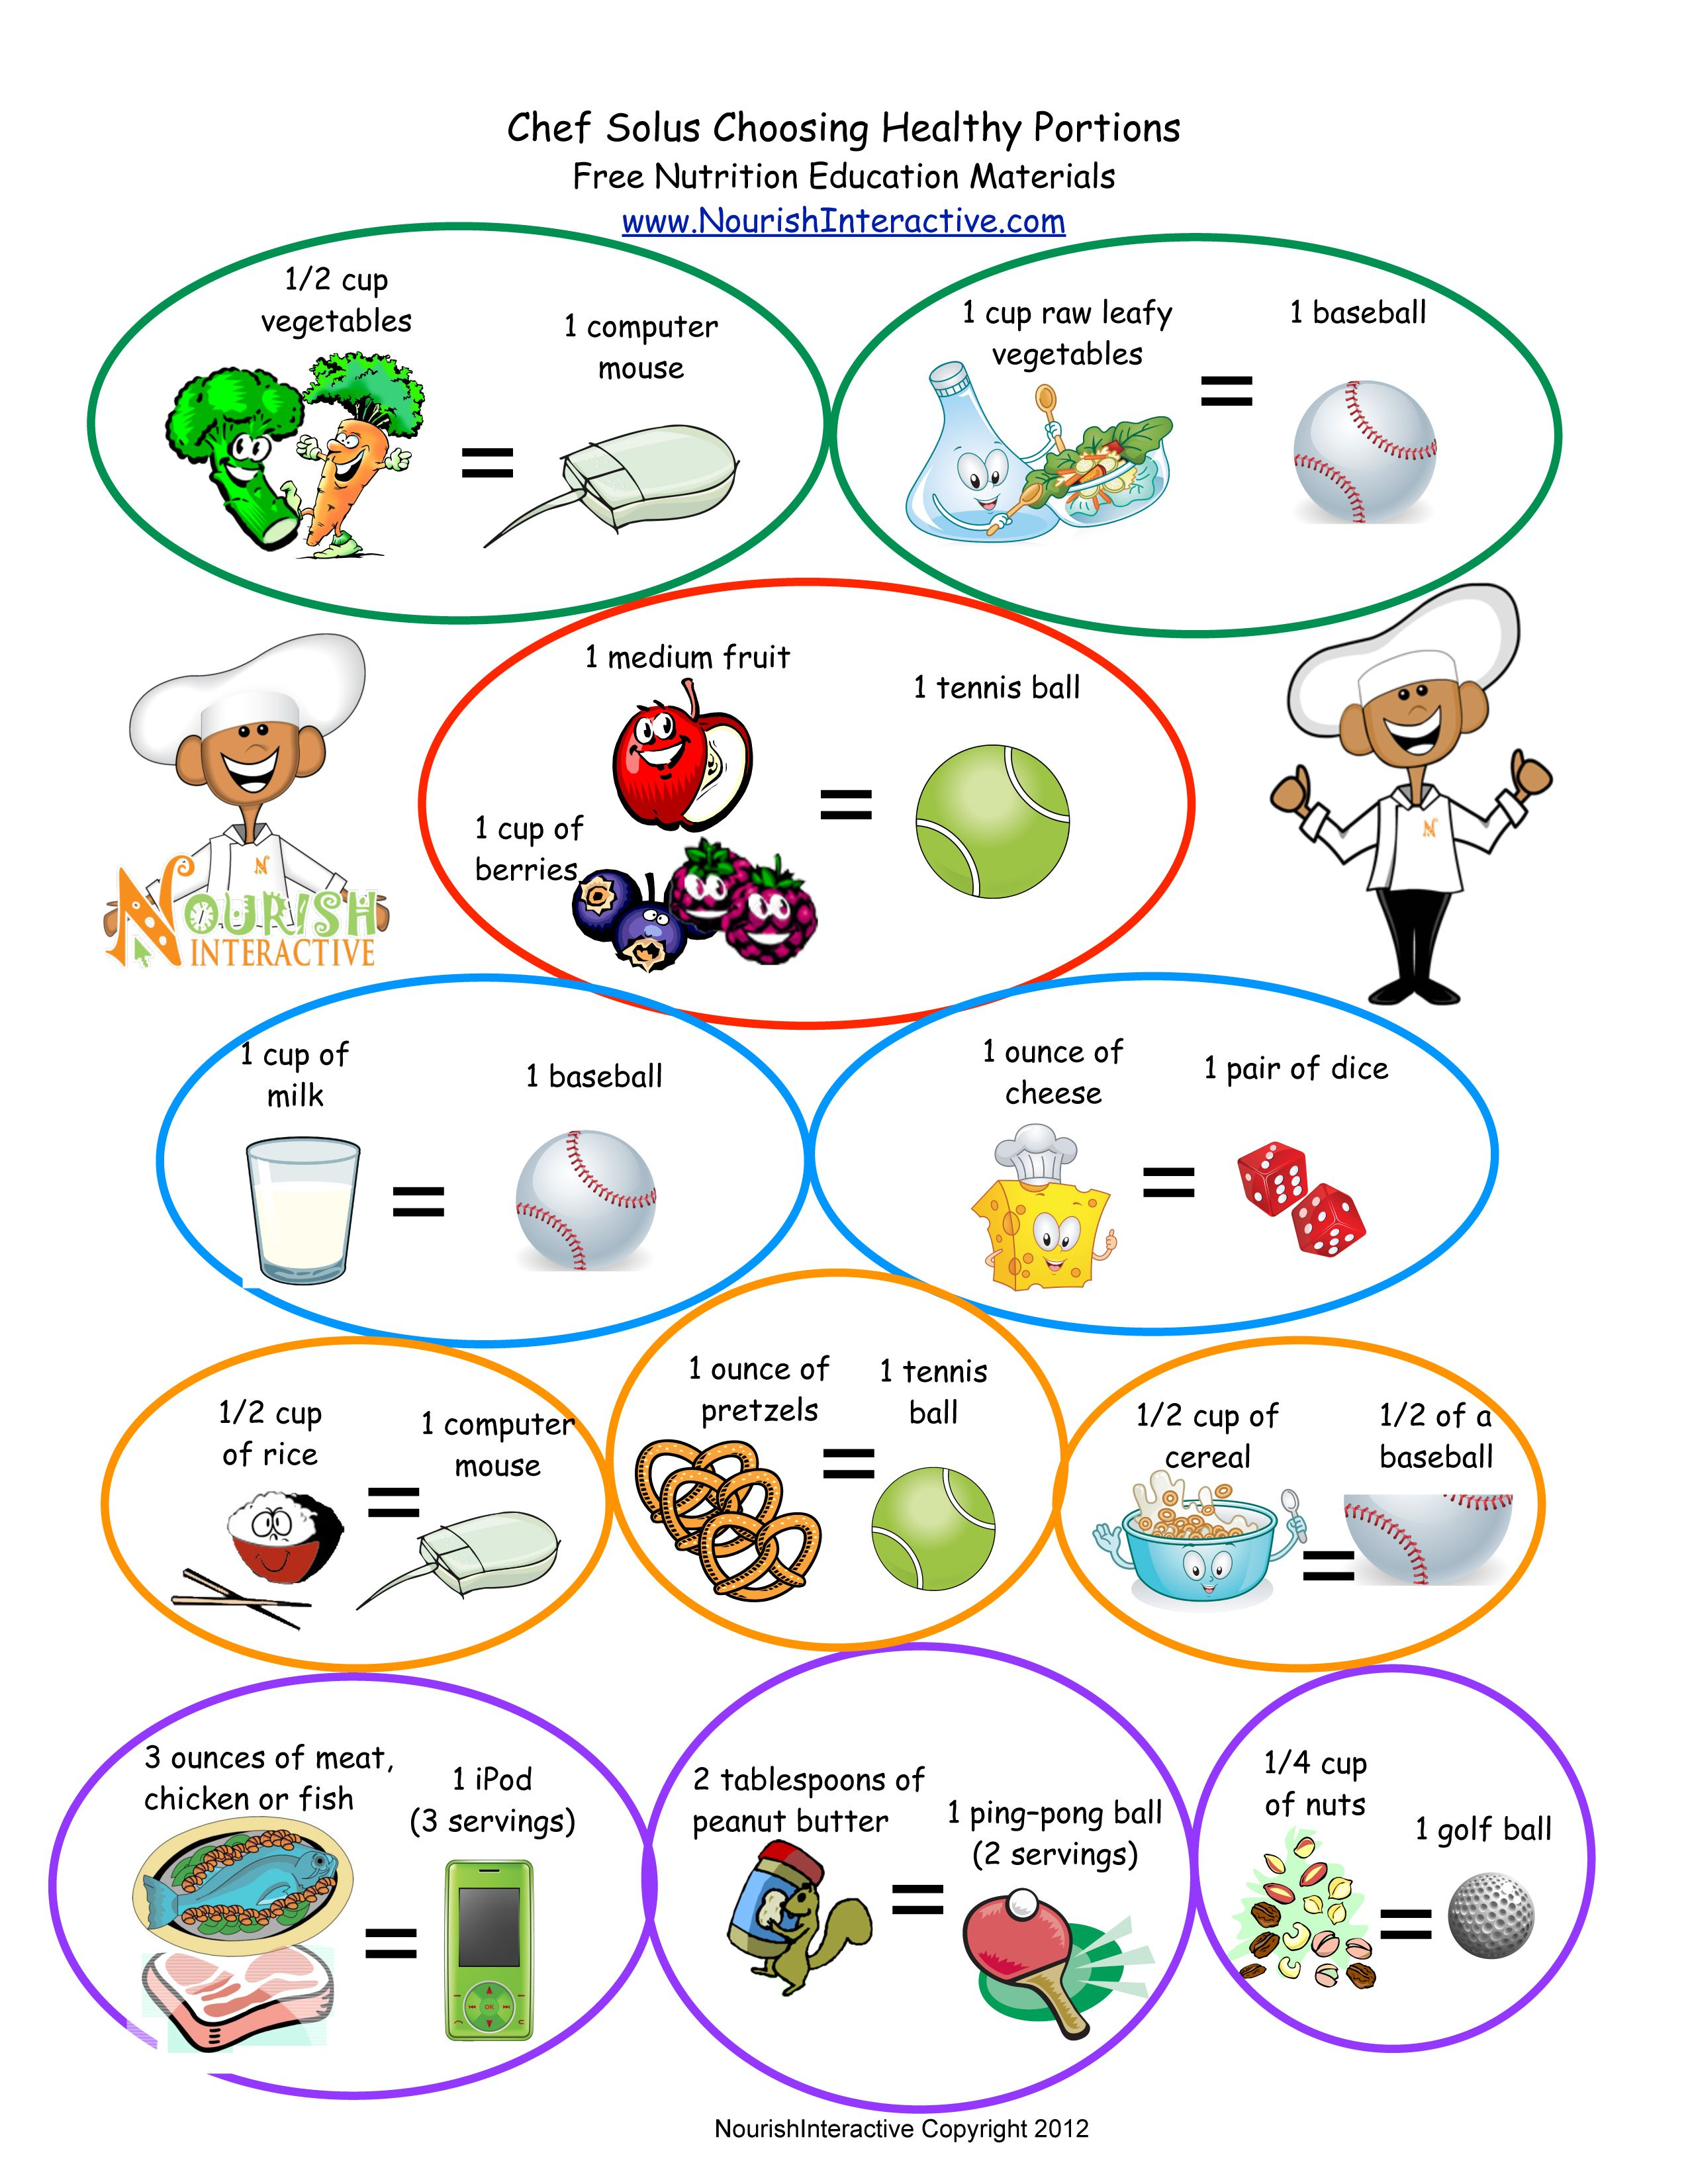 Food Group Portion Size Comparison Household Items With